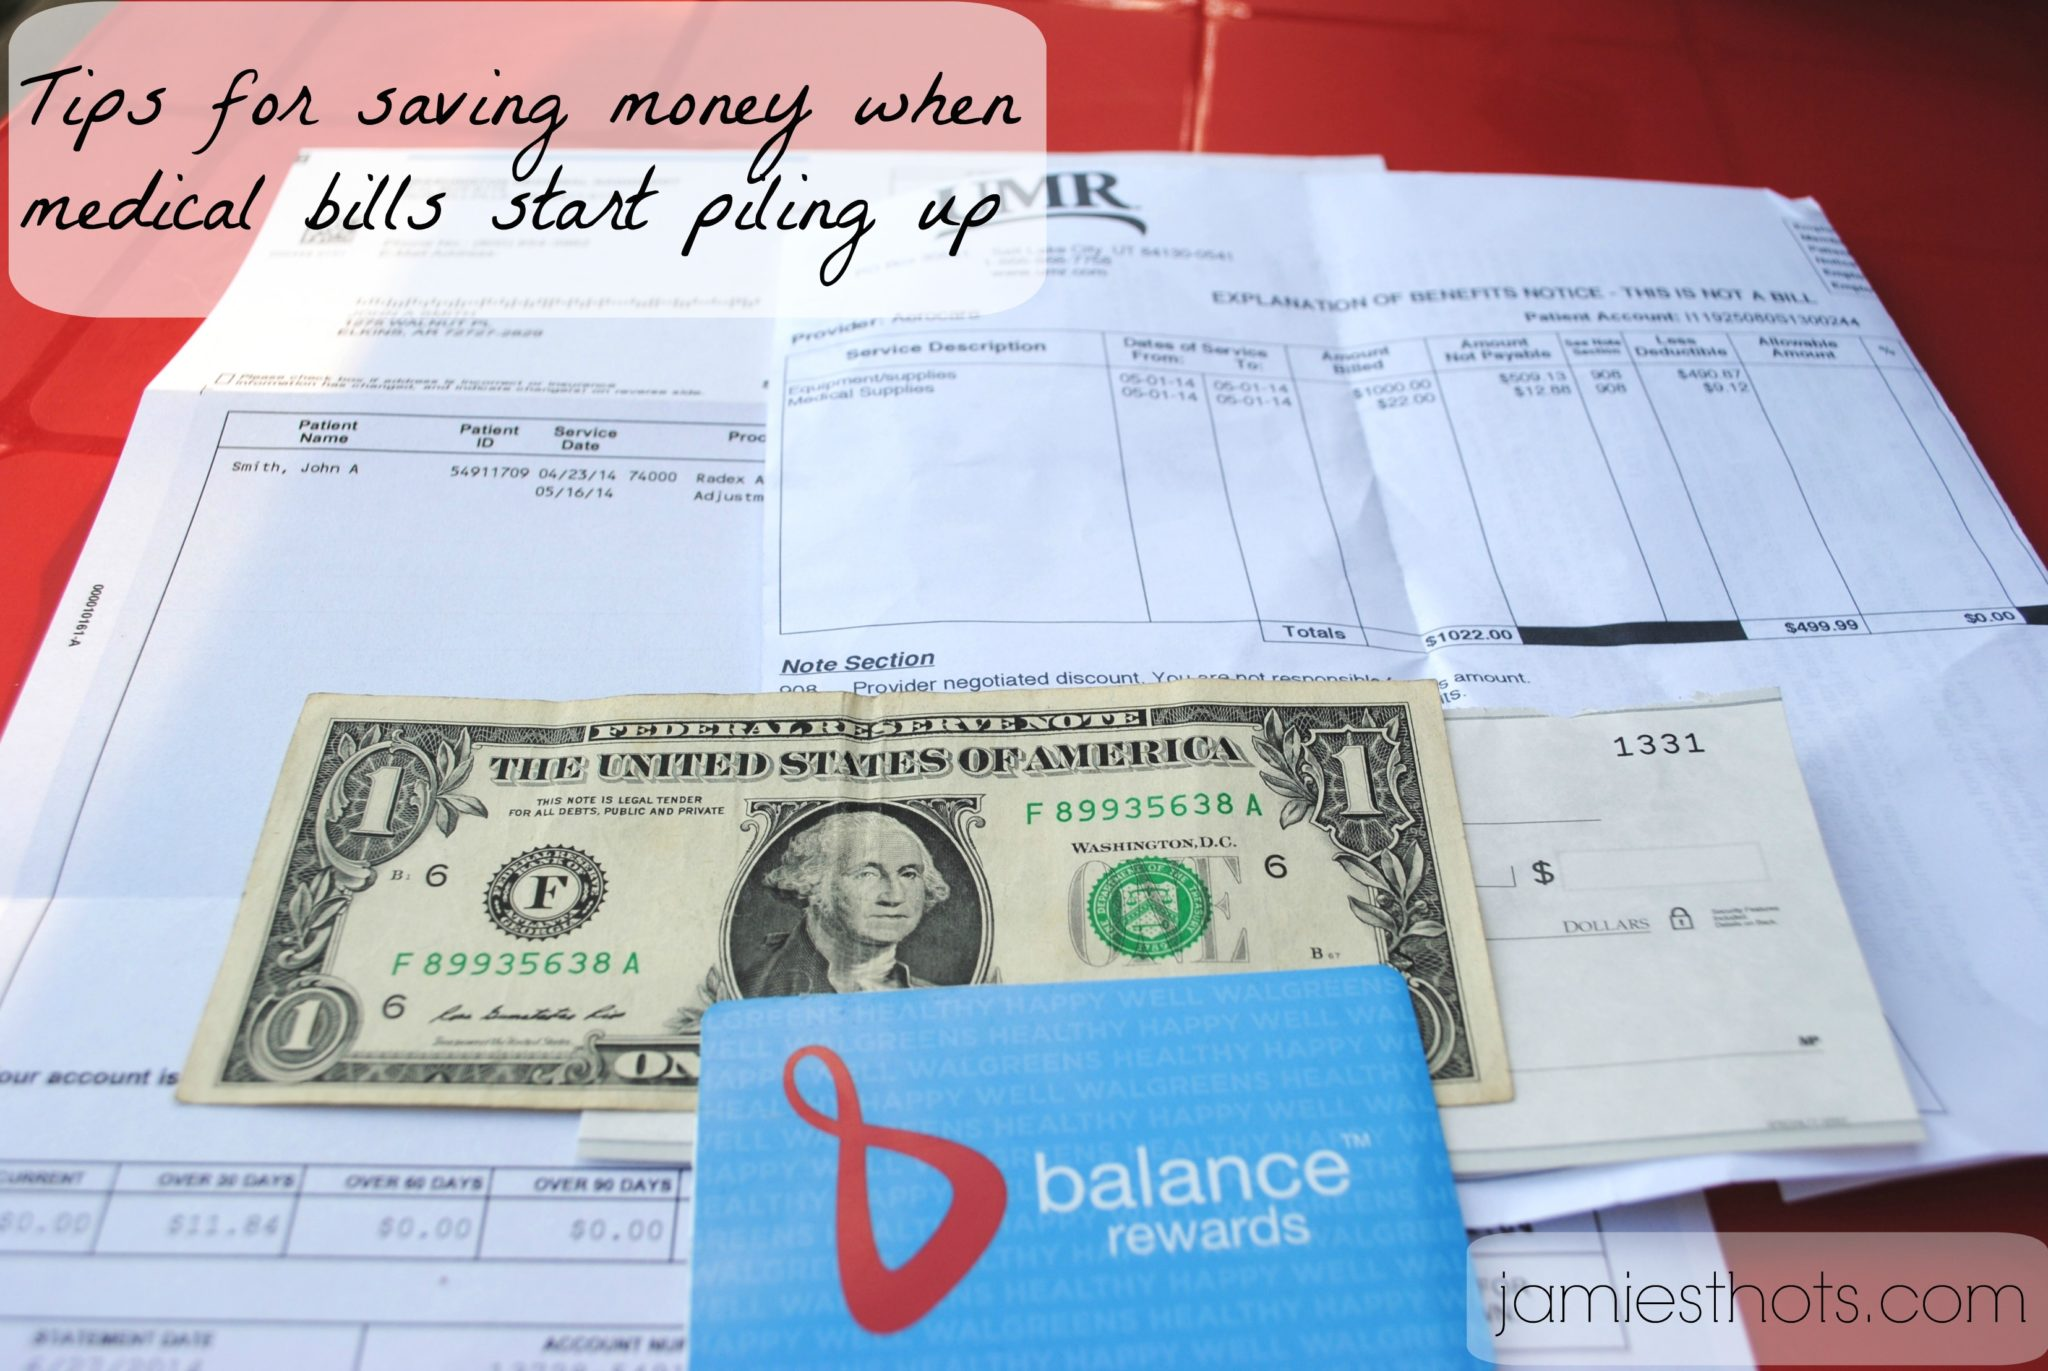 How we save money when medical bills start piling up (including paperless coupons)